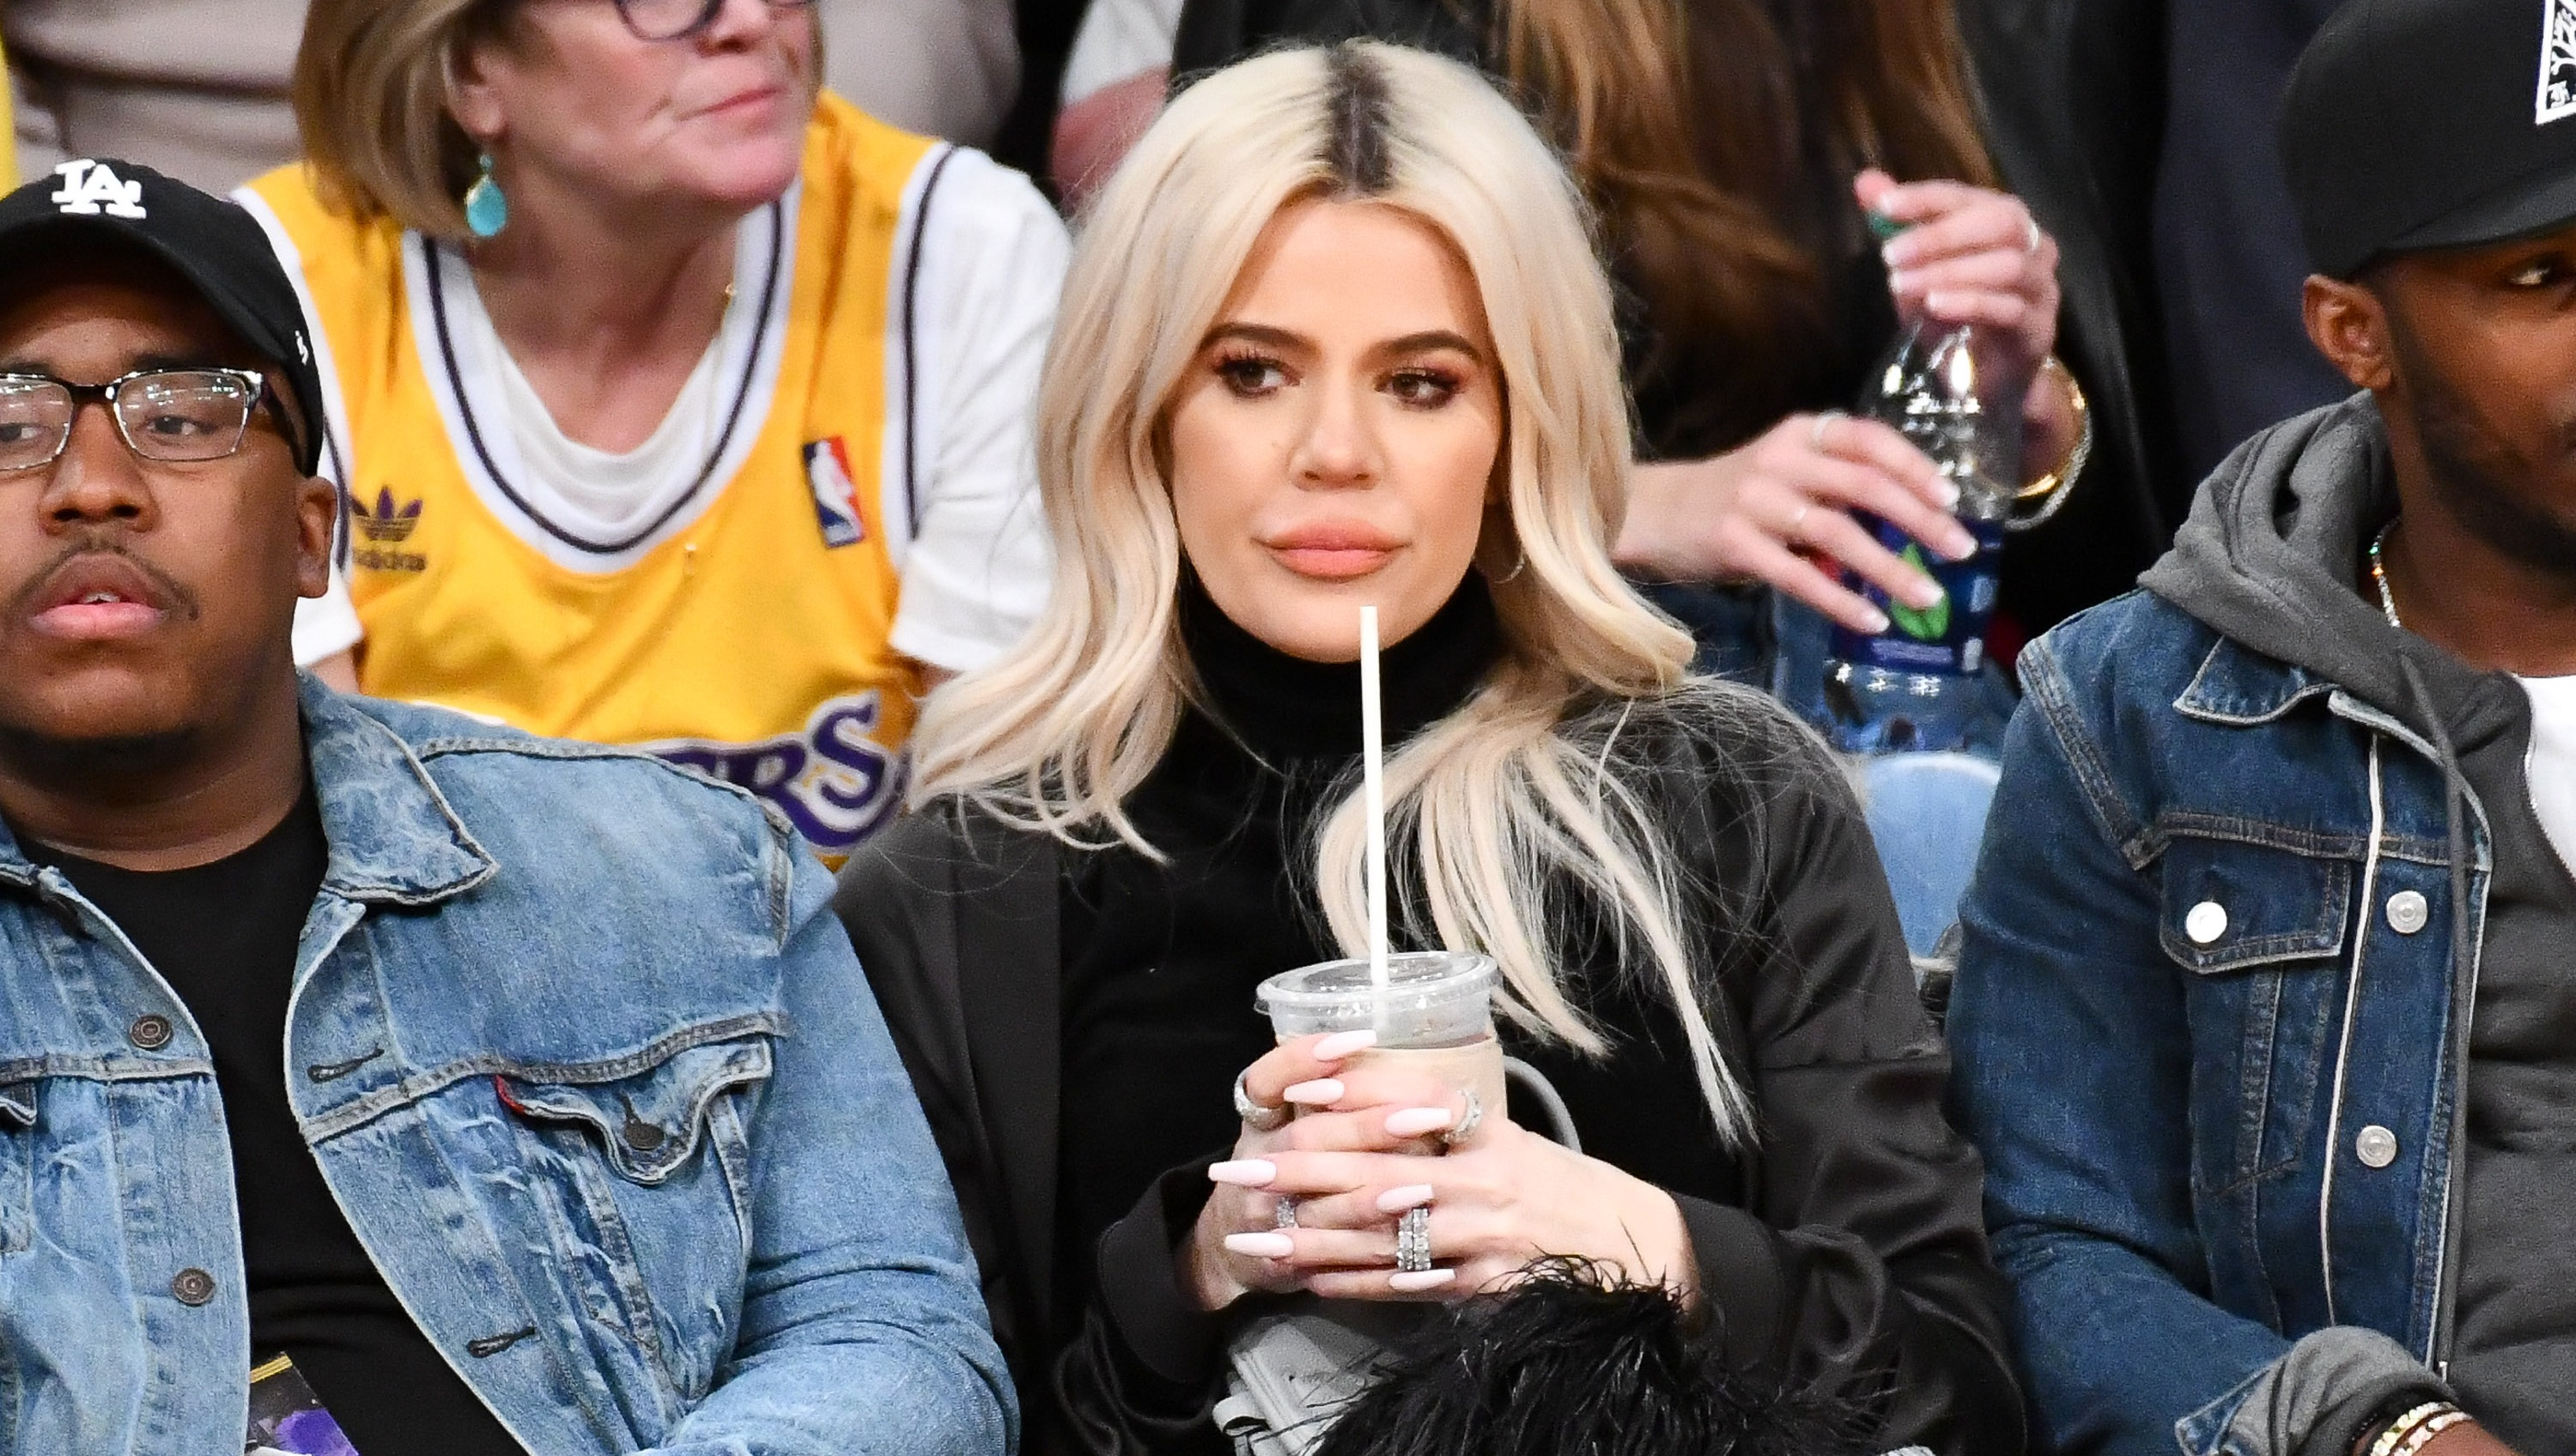 Khloe Kardashian watching Tristan Thompson play basketball